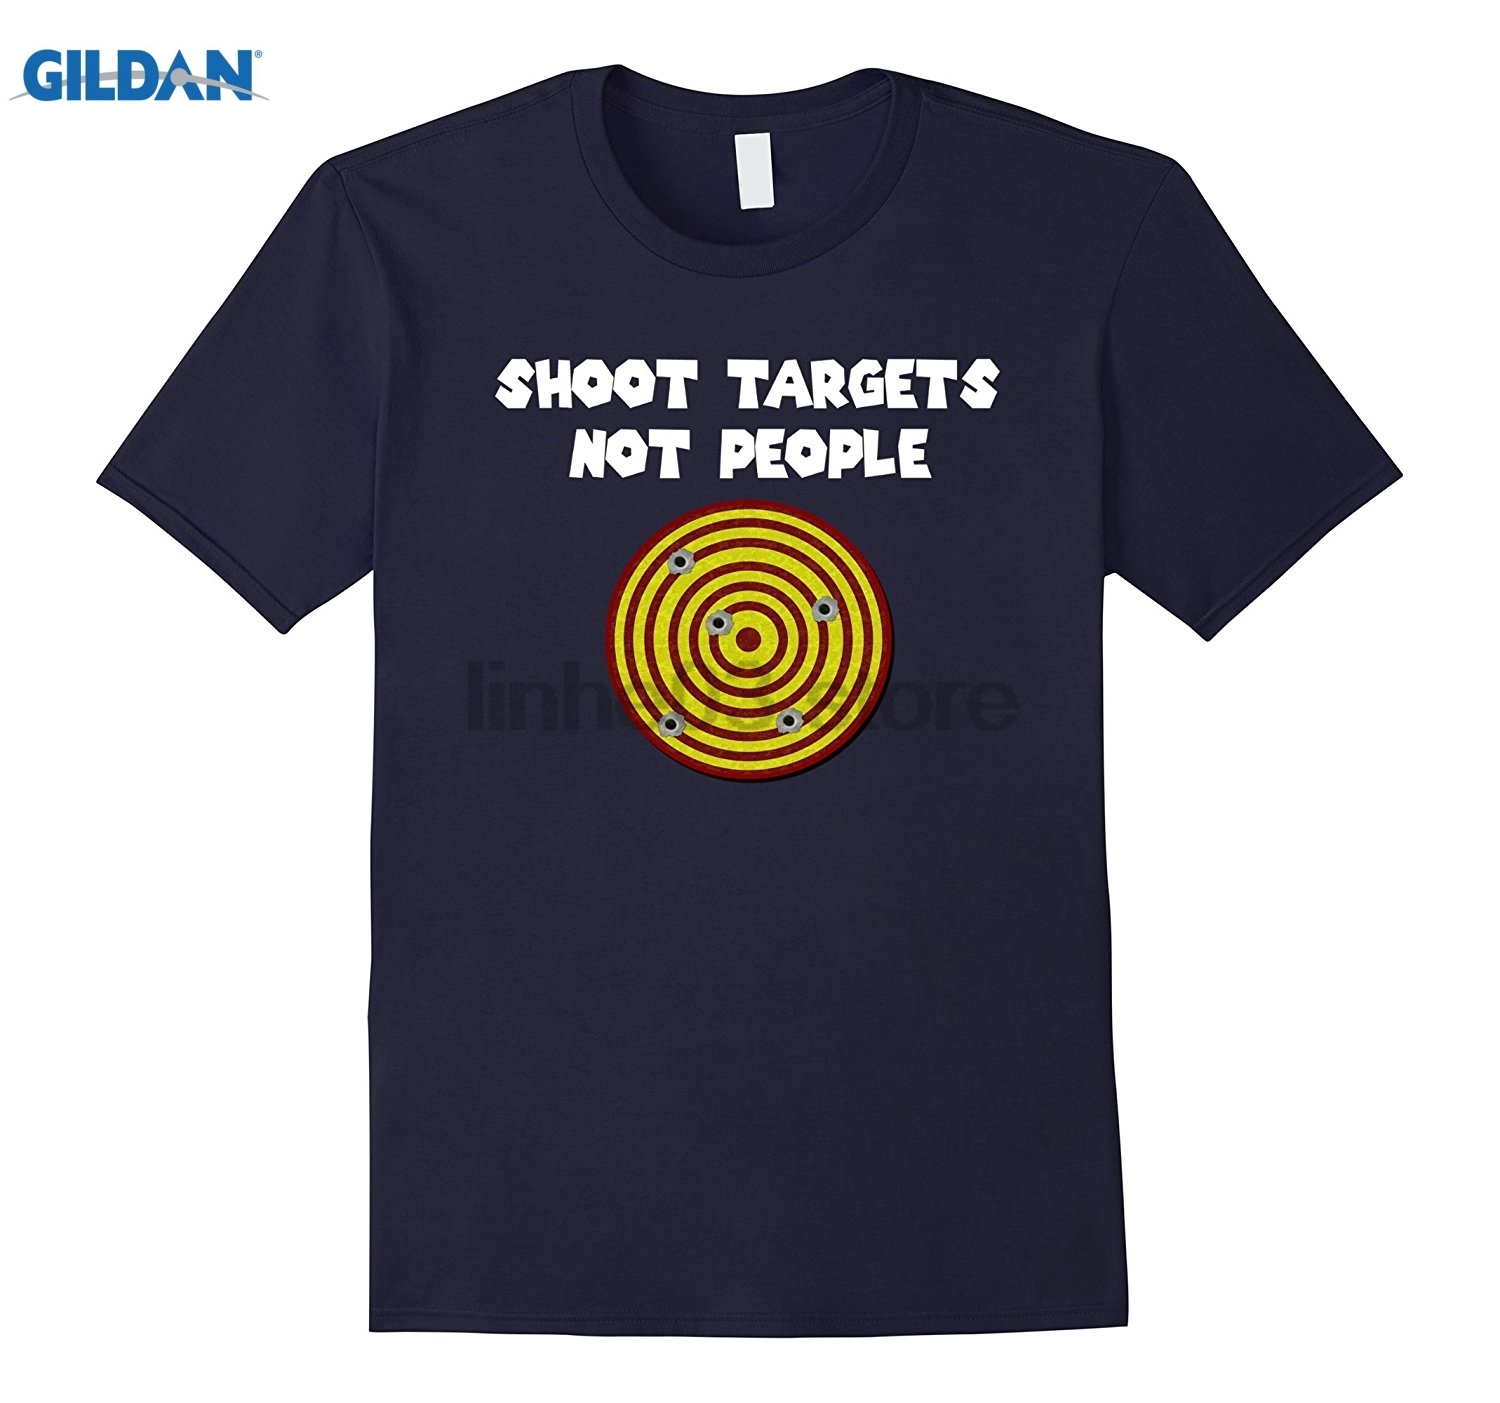 GILDAN SHOOT TARGETS NOT PEOPLE T-SHIRTS (FIRING RANGE TARGET) Womens T-shirt Womens T-shirt